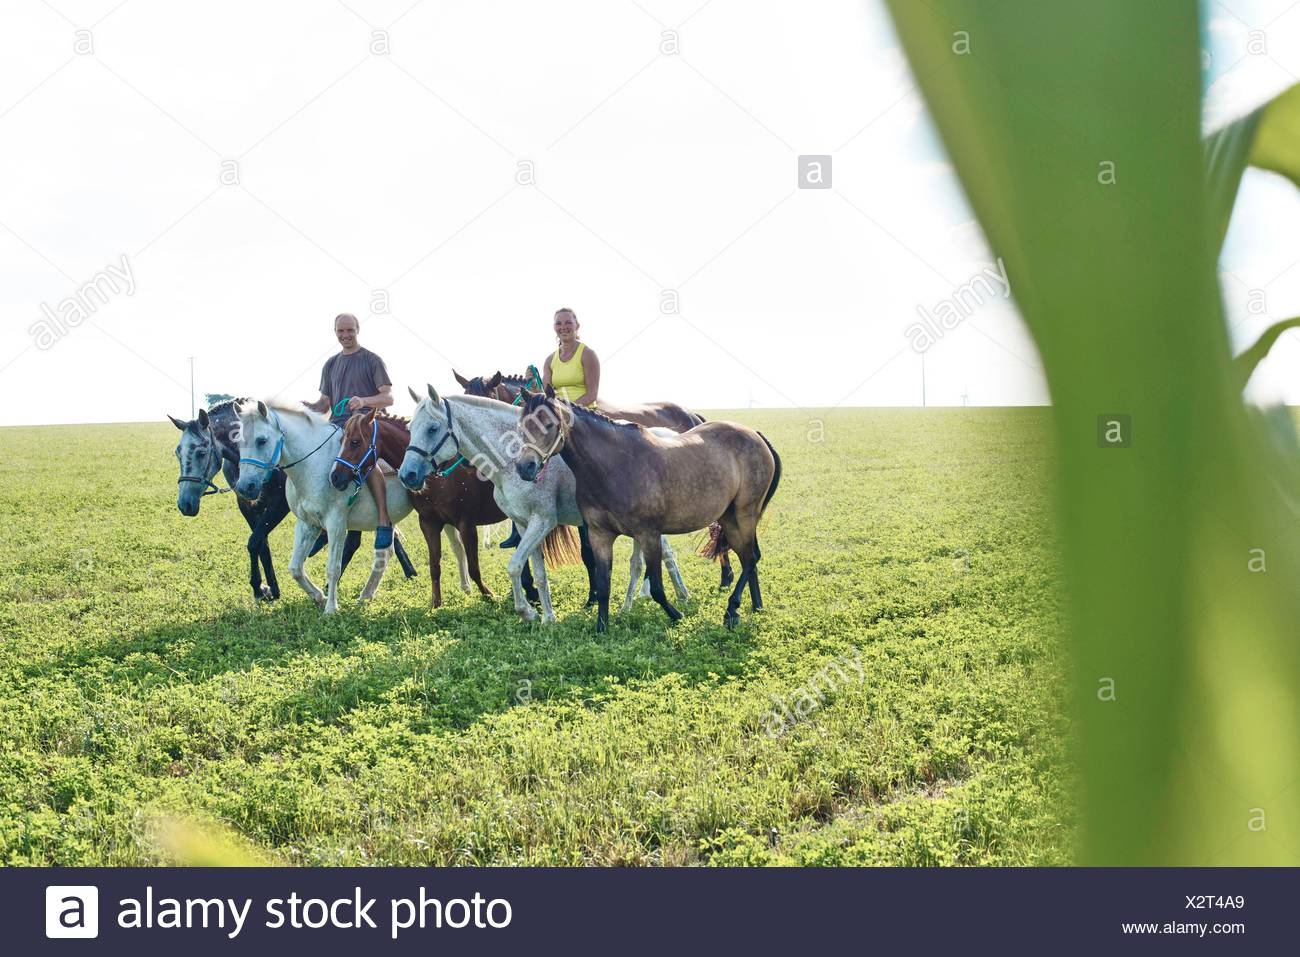 Woman and man riding and leading six horses in field - Stock Image